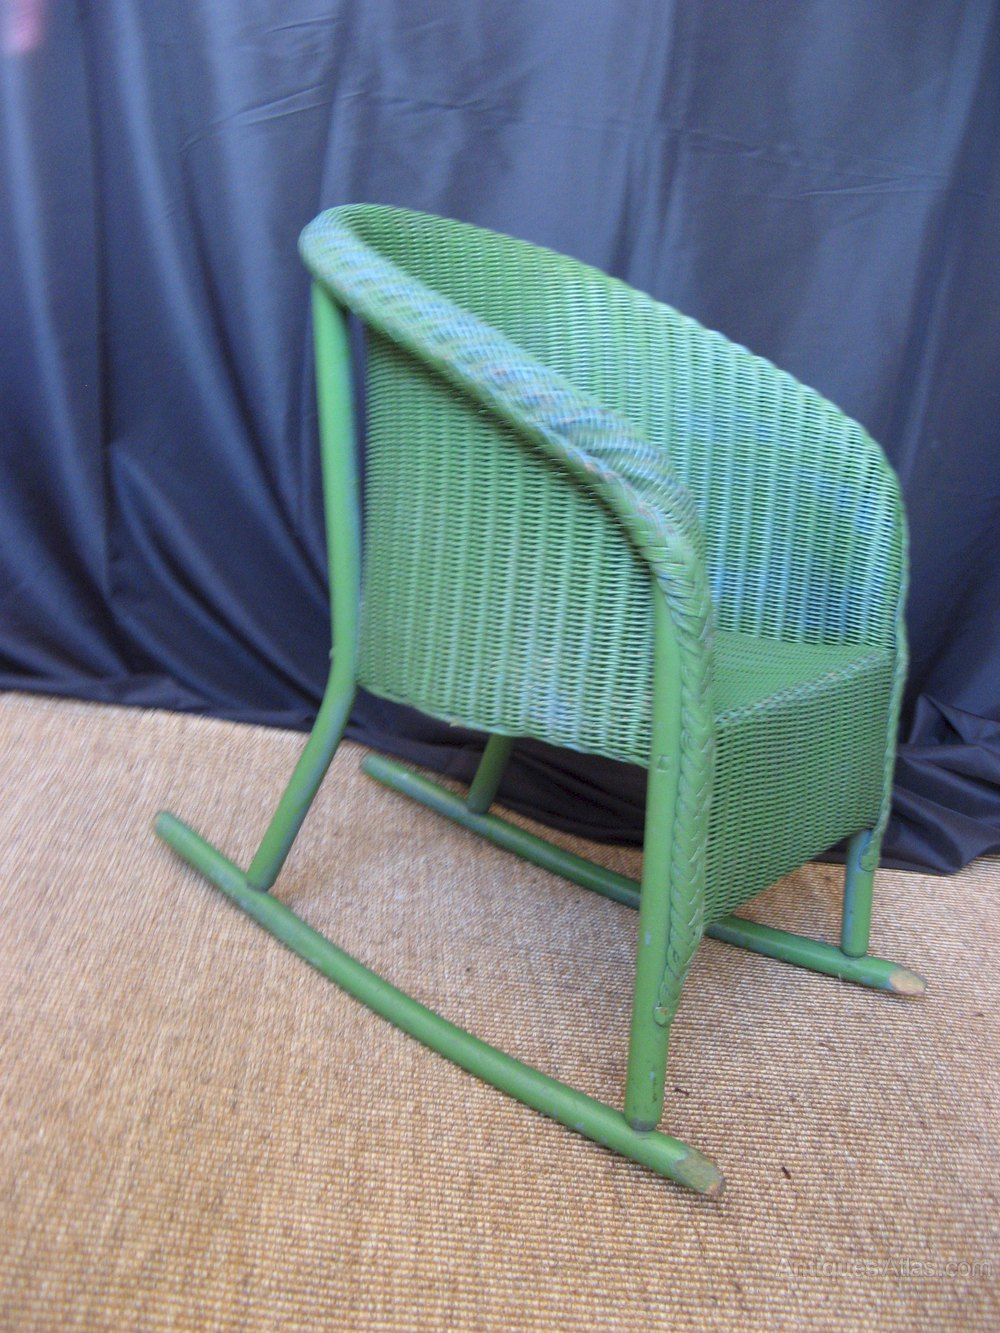 antique rocking chairs for sale anthropologie hanging chair children's lloyd loom - antiques atlas